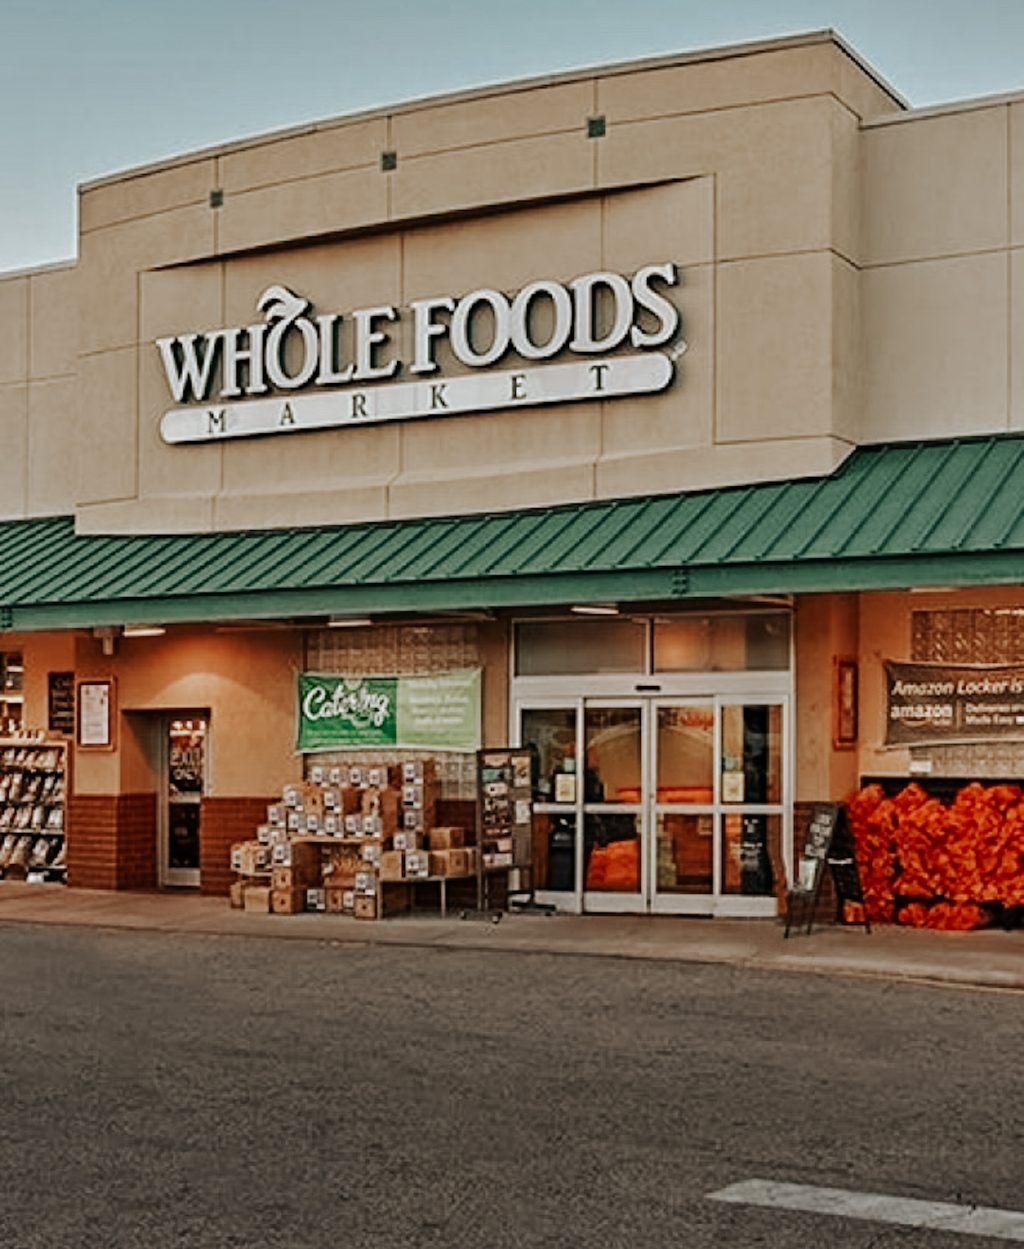 Grocery shopping on a budget 8701 1024x1249 - Grocery Shopping On A Budget? Here's 5 Ways To Save